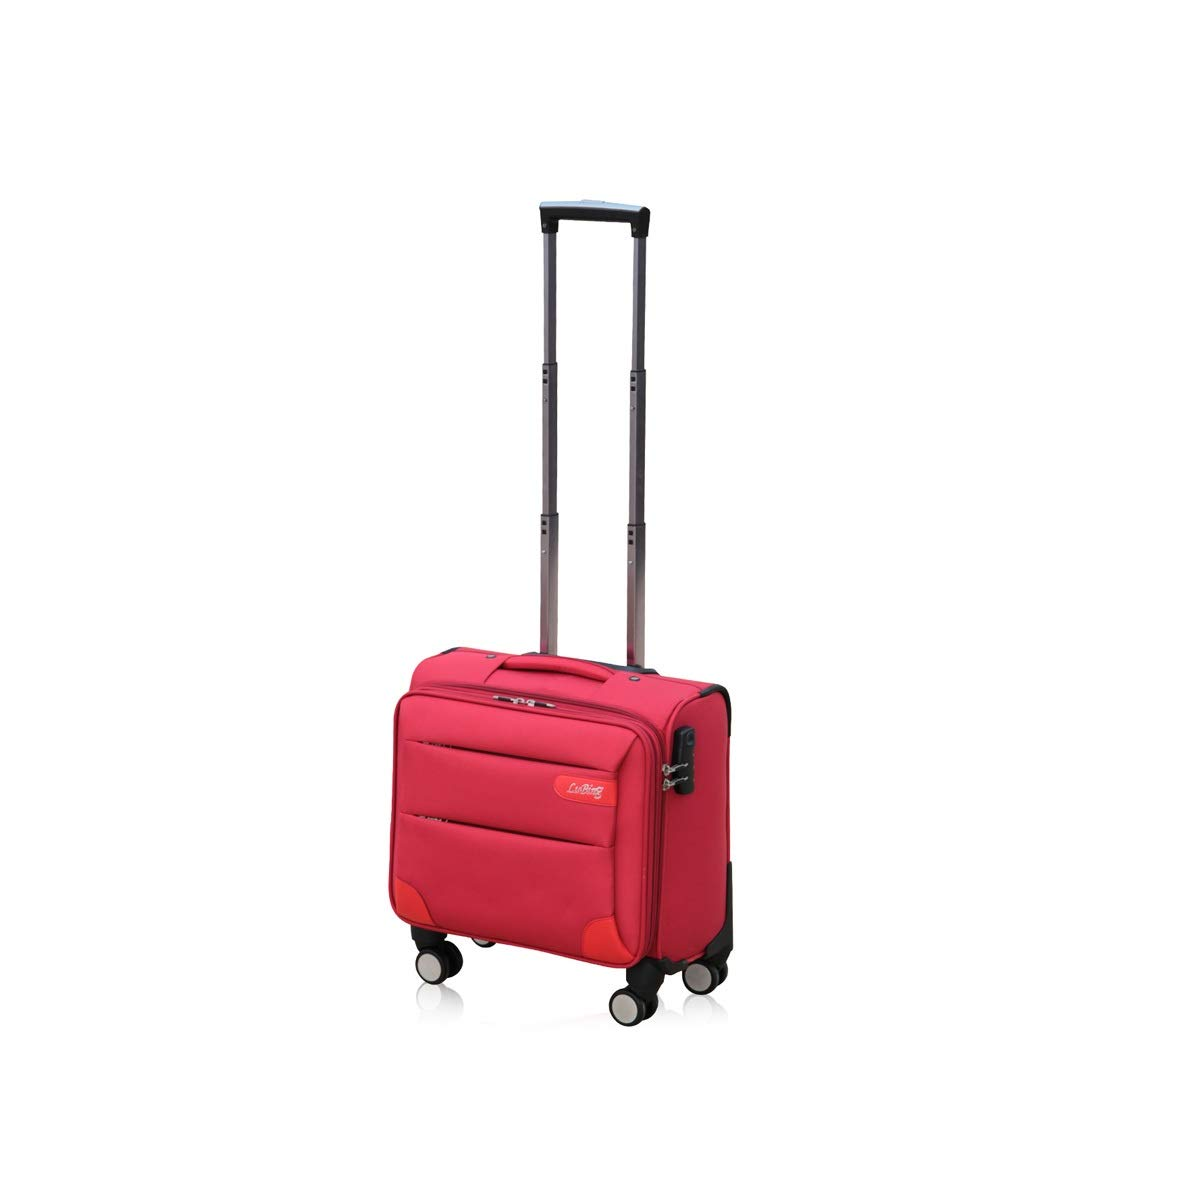 Trolley Case Color : Red, Size : 14 inches Boarding 8haowenju Soft Rotating Luggage Travel Storage Box 14//16//18//20 Inches Best Gift Carrying Luggage